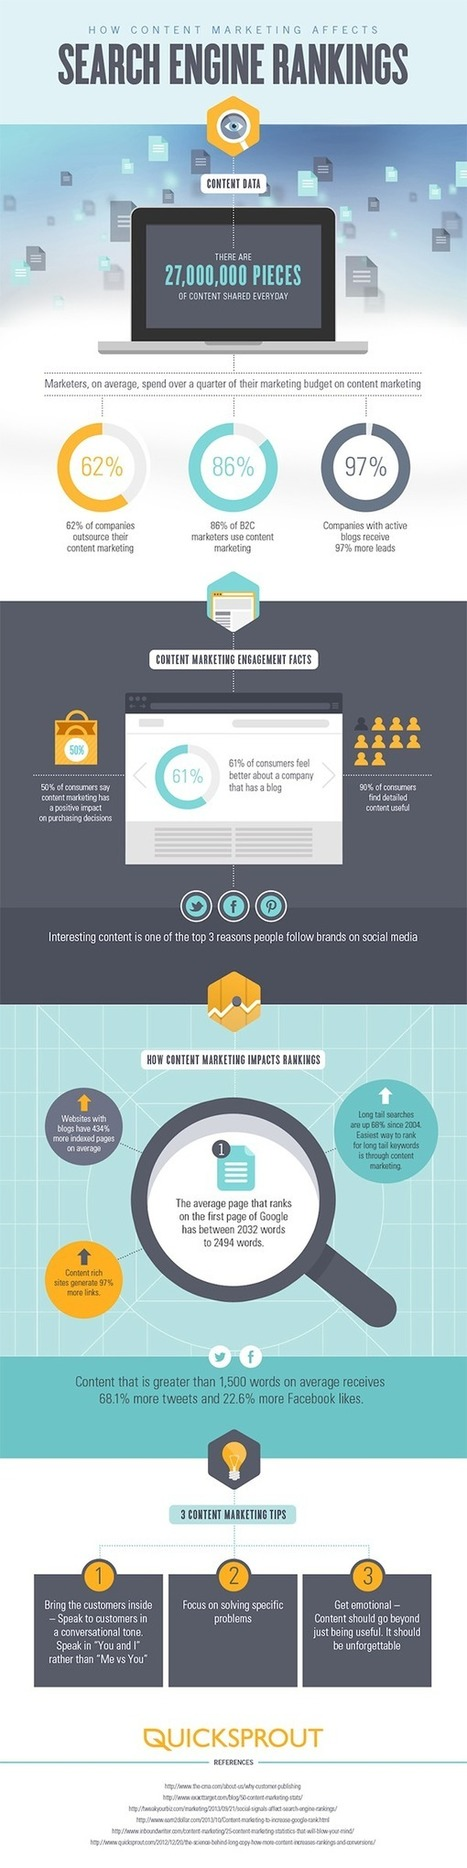 Generate 97% More Leads With This One Trick | Social Infografic Trend Social Media Metrics & Web Design Strategic Marketing | Scoop.it